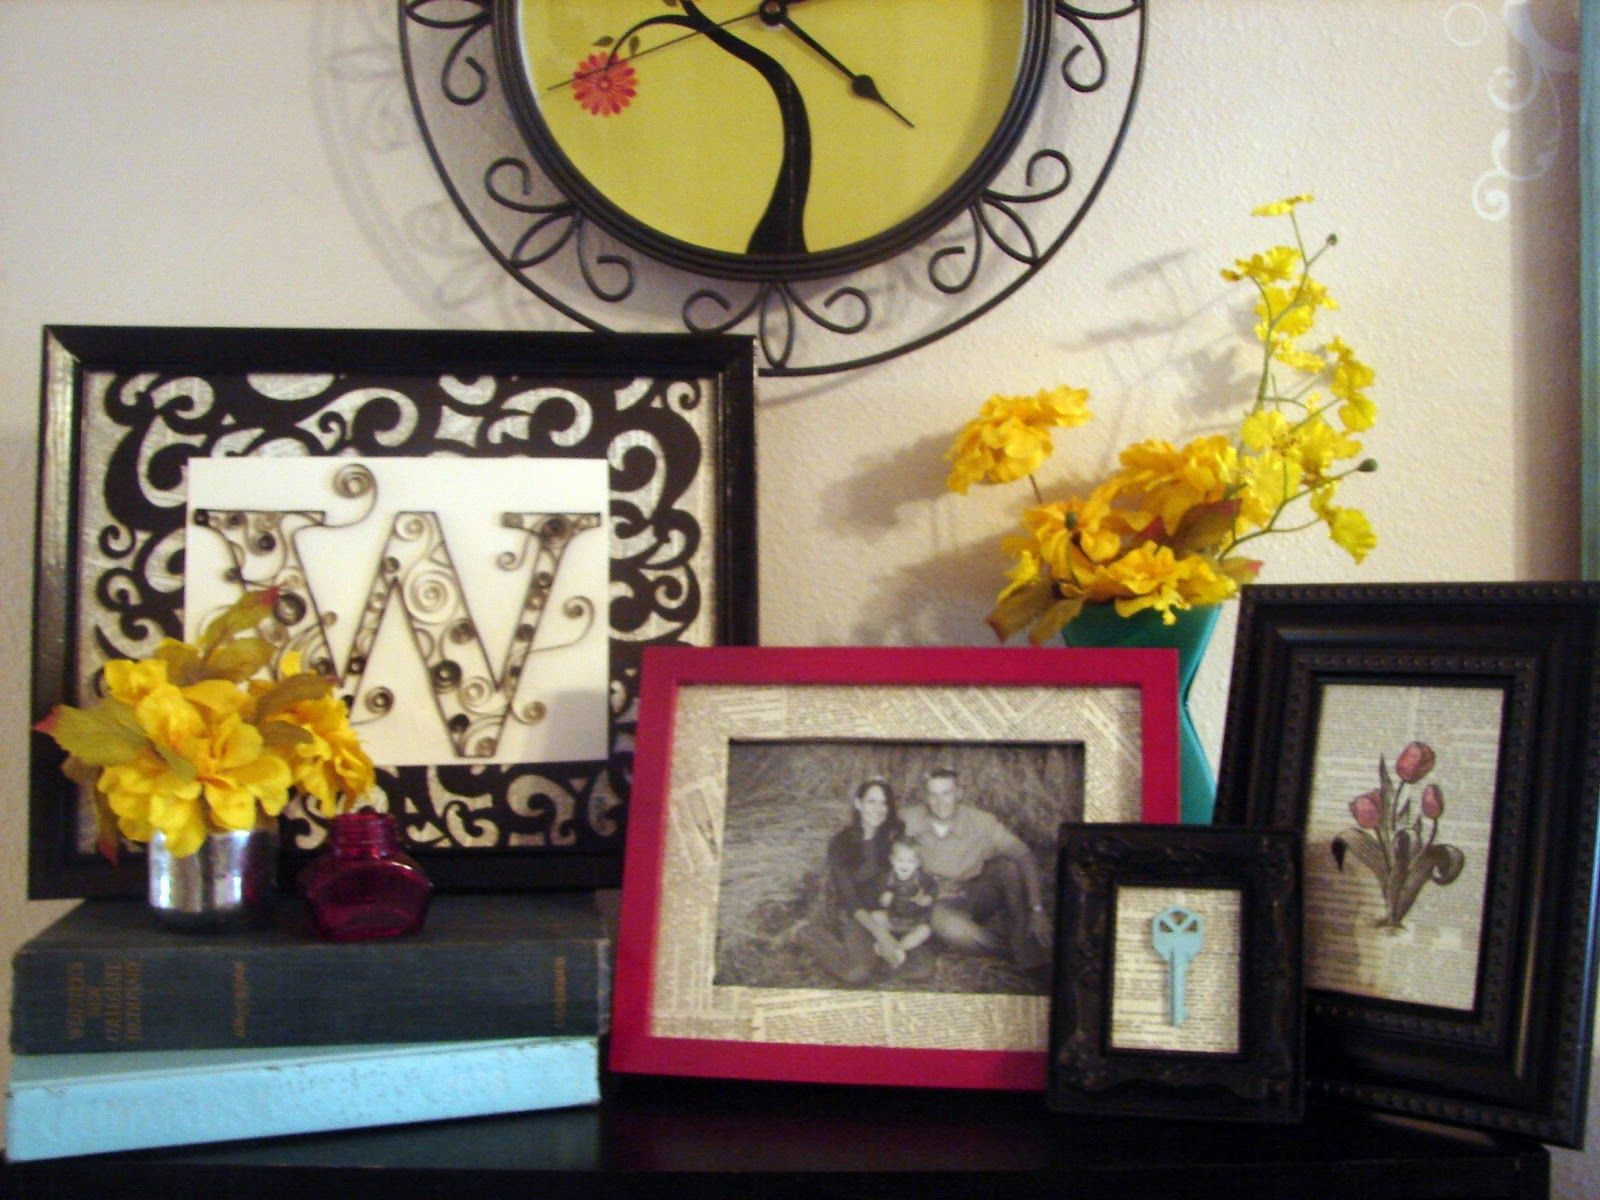 Like idea of framed letter nice change up in a grouping of photos